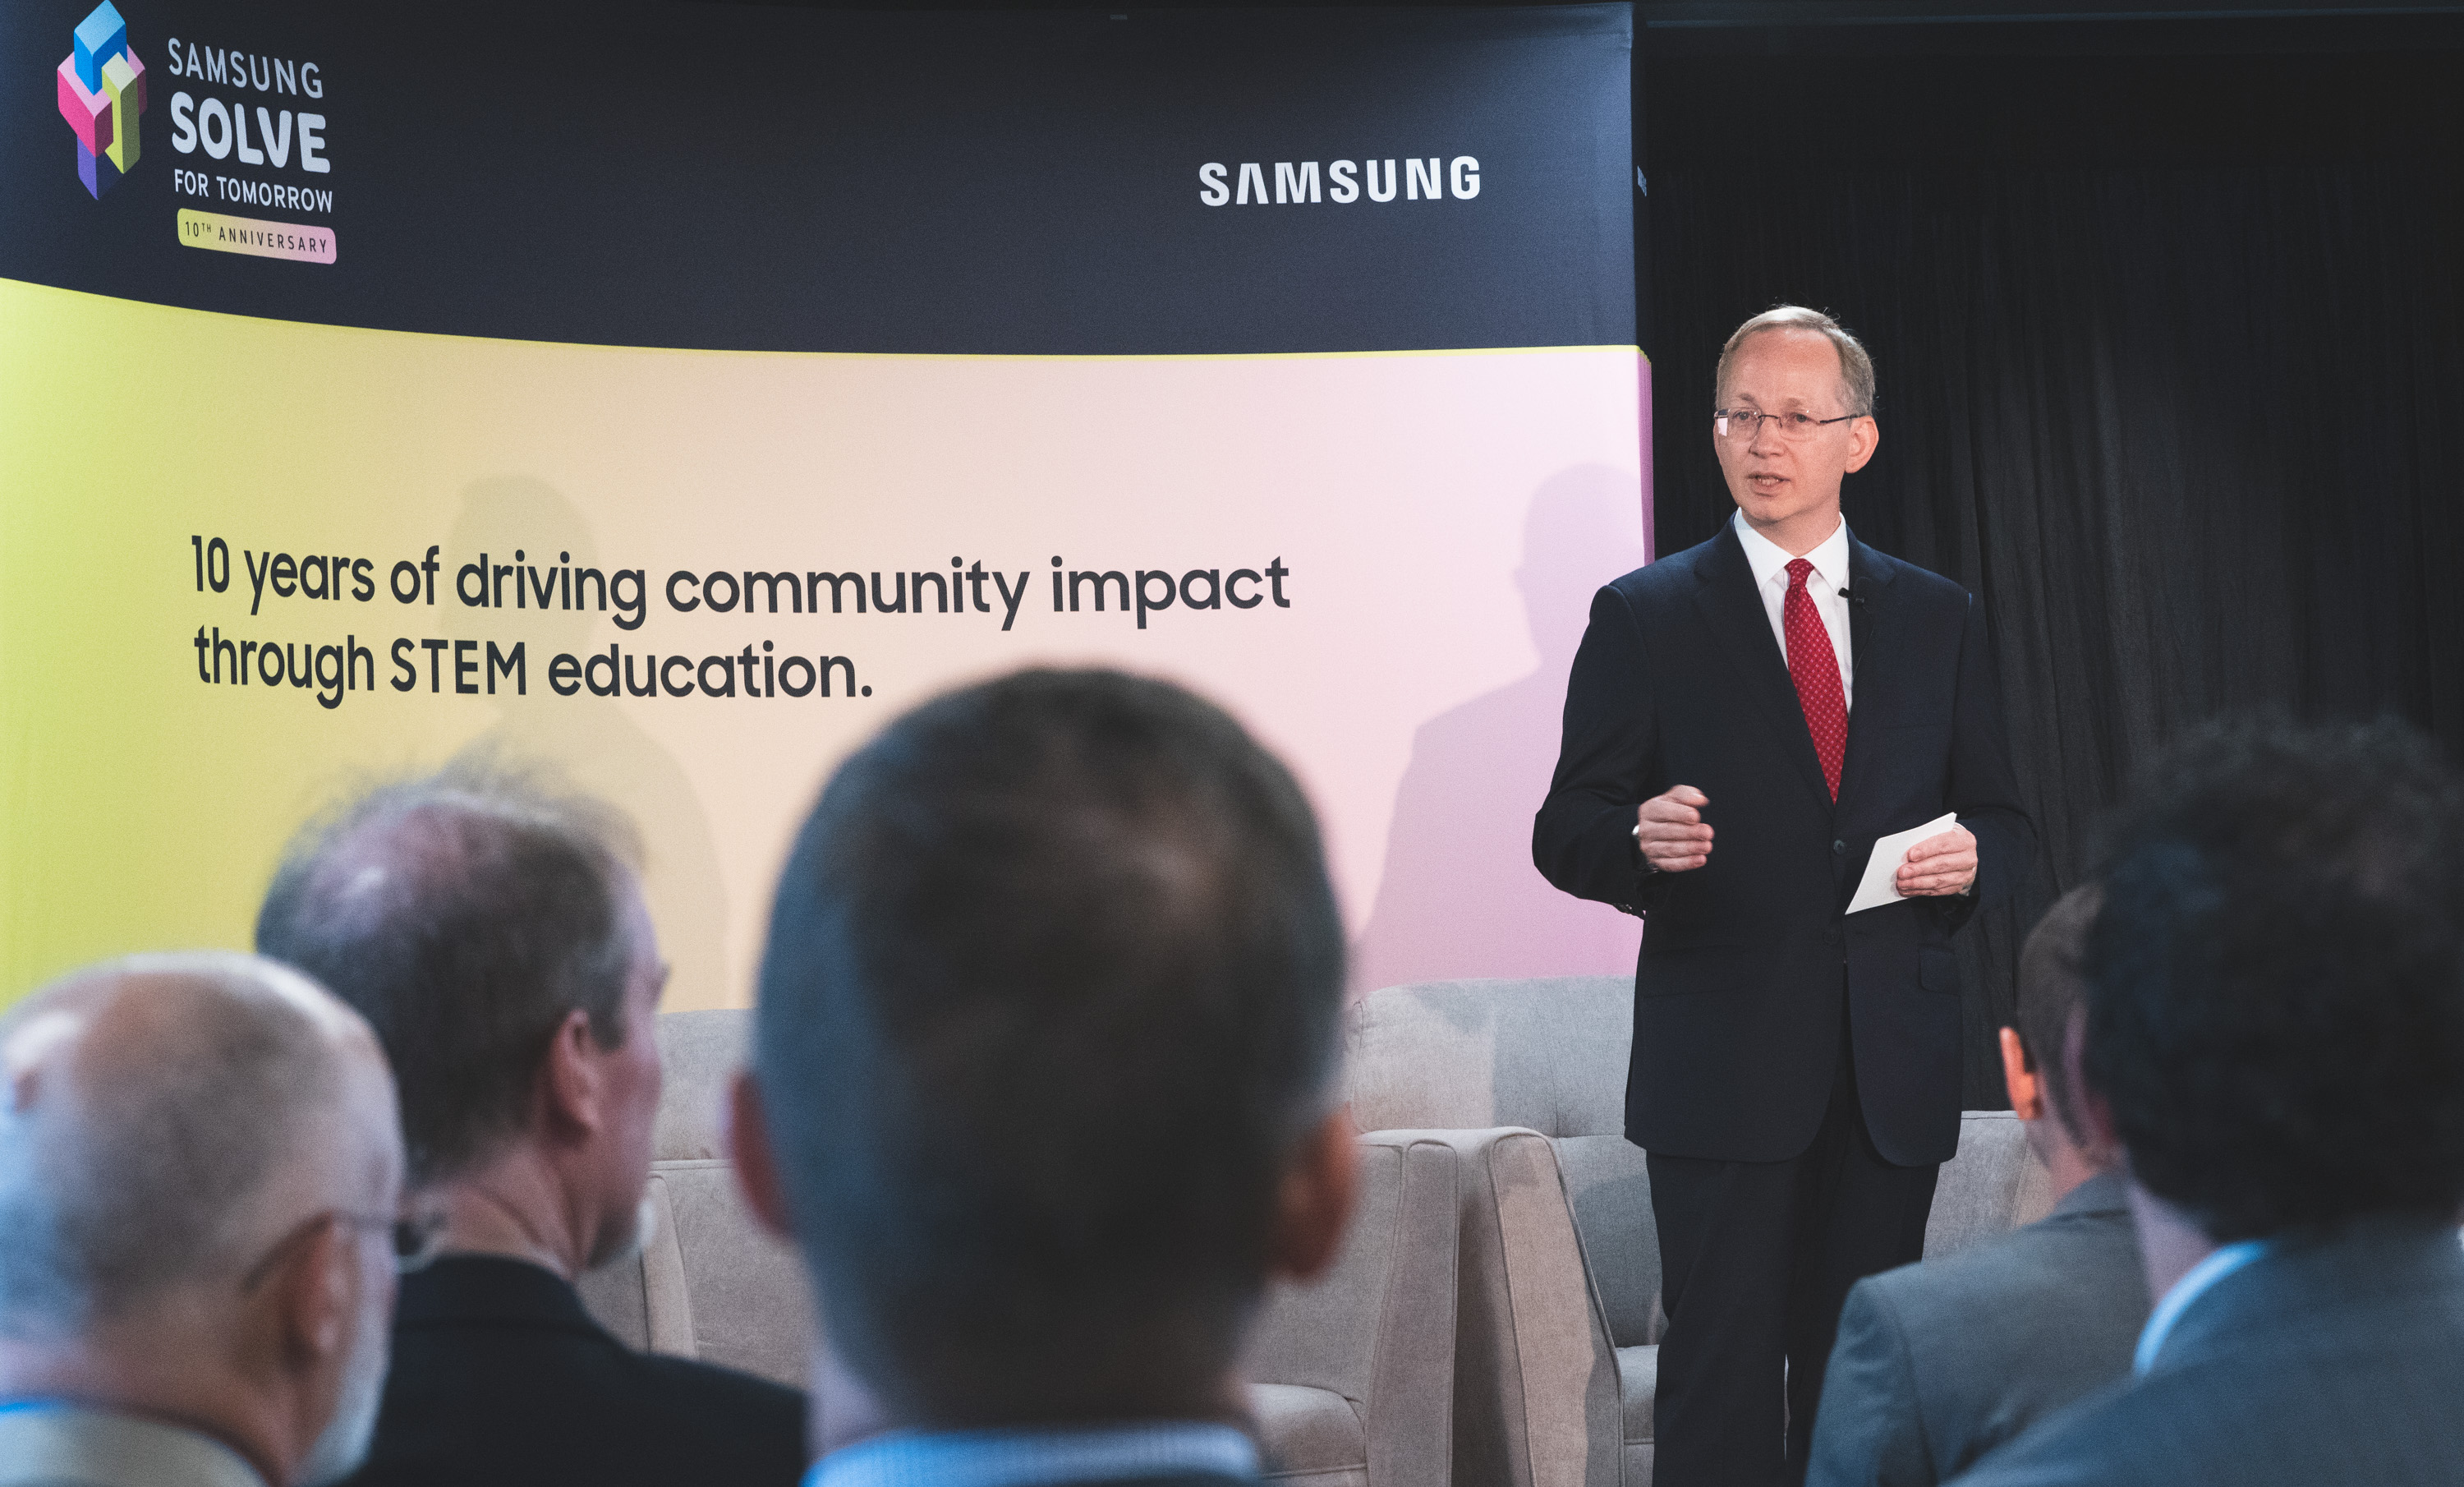 David Steel, Executive Vice President of Corporate Affairs for Samsung Electronics America, speaks on the impact Samsung Solve for Tomorrow Contest has made on local communities the past nine years at the 10th anniversary launch event on September 12, 2019 in Washington, D.C.